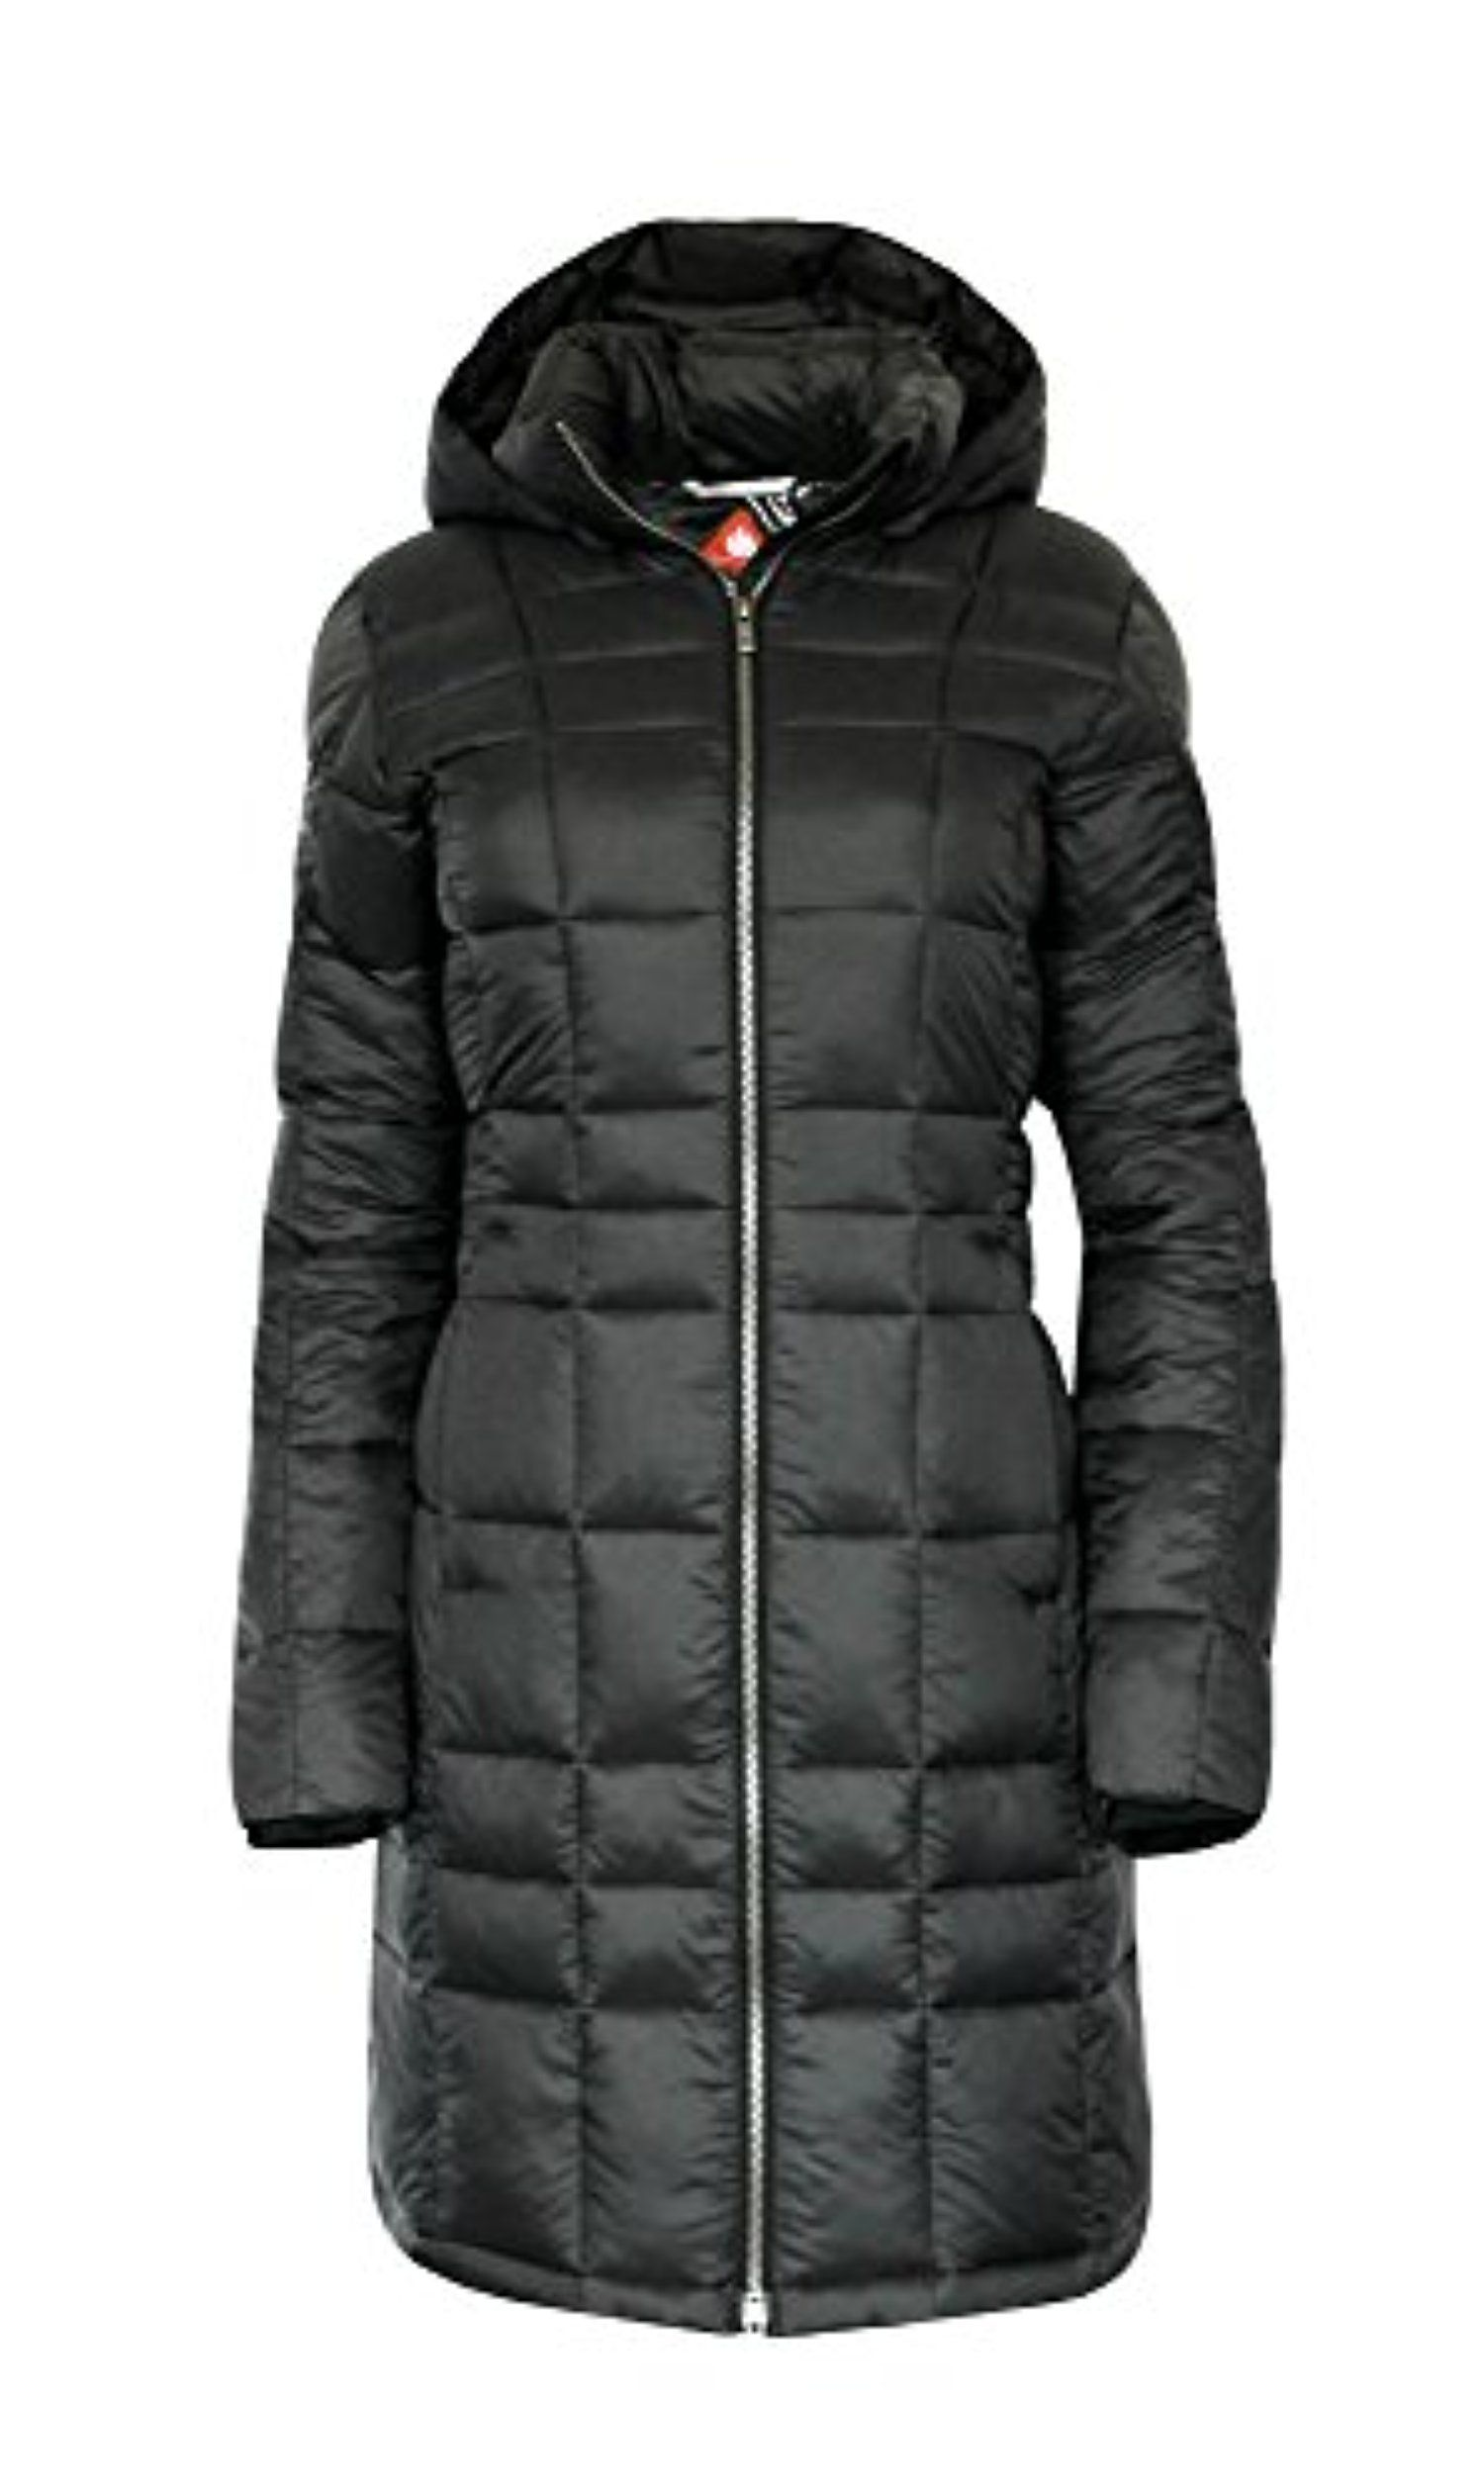 COLUMBIA women's Backcountry Blizzard hooded long jacket ...